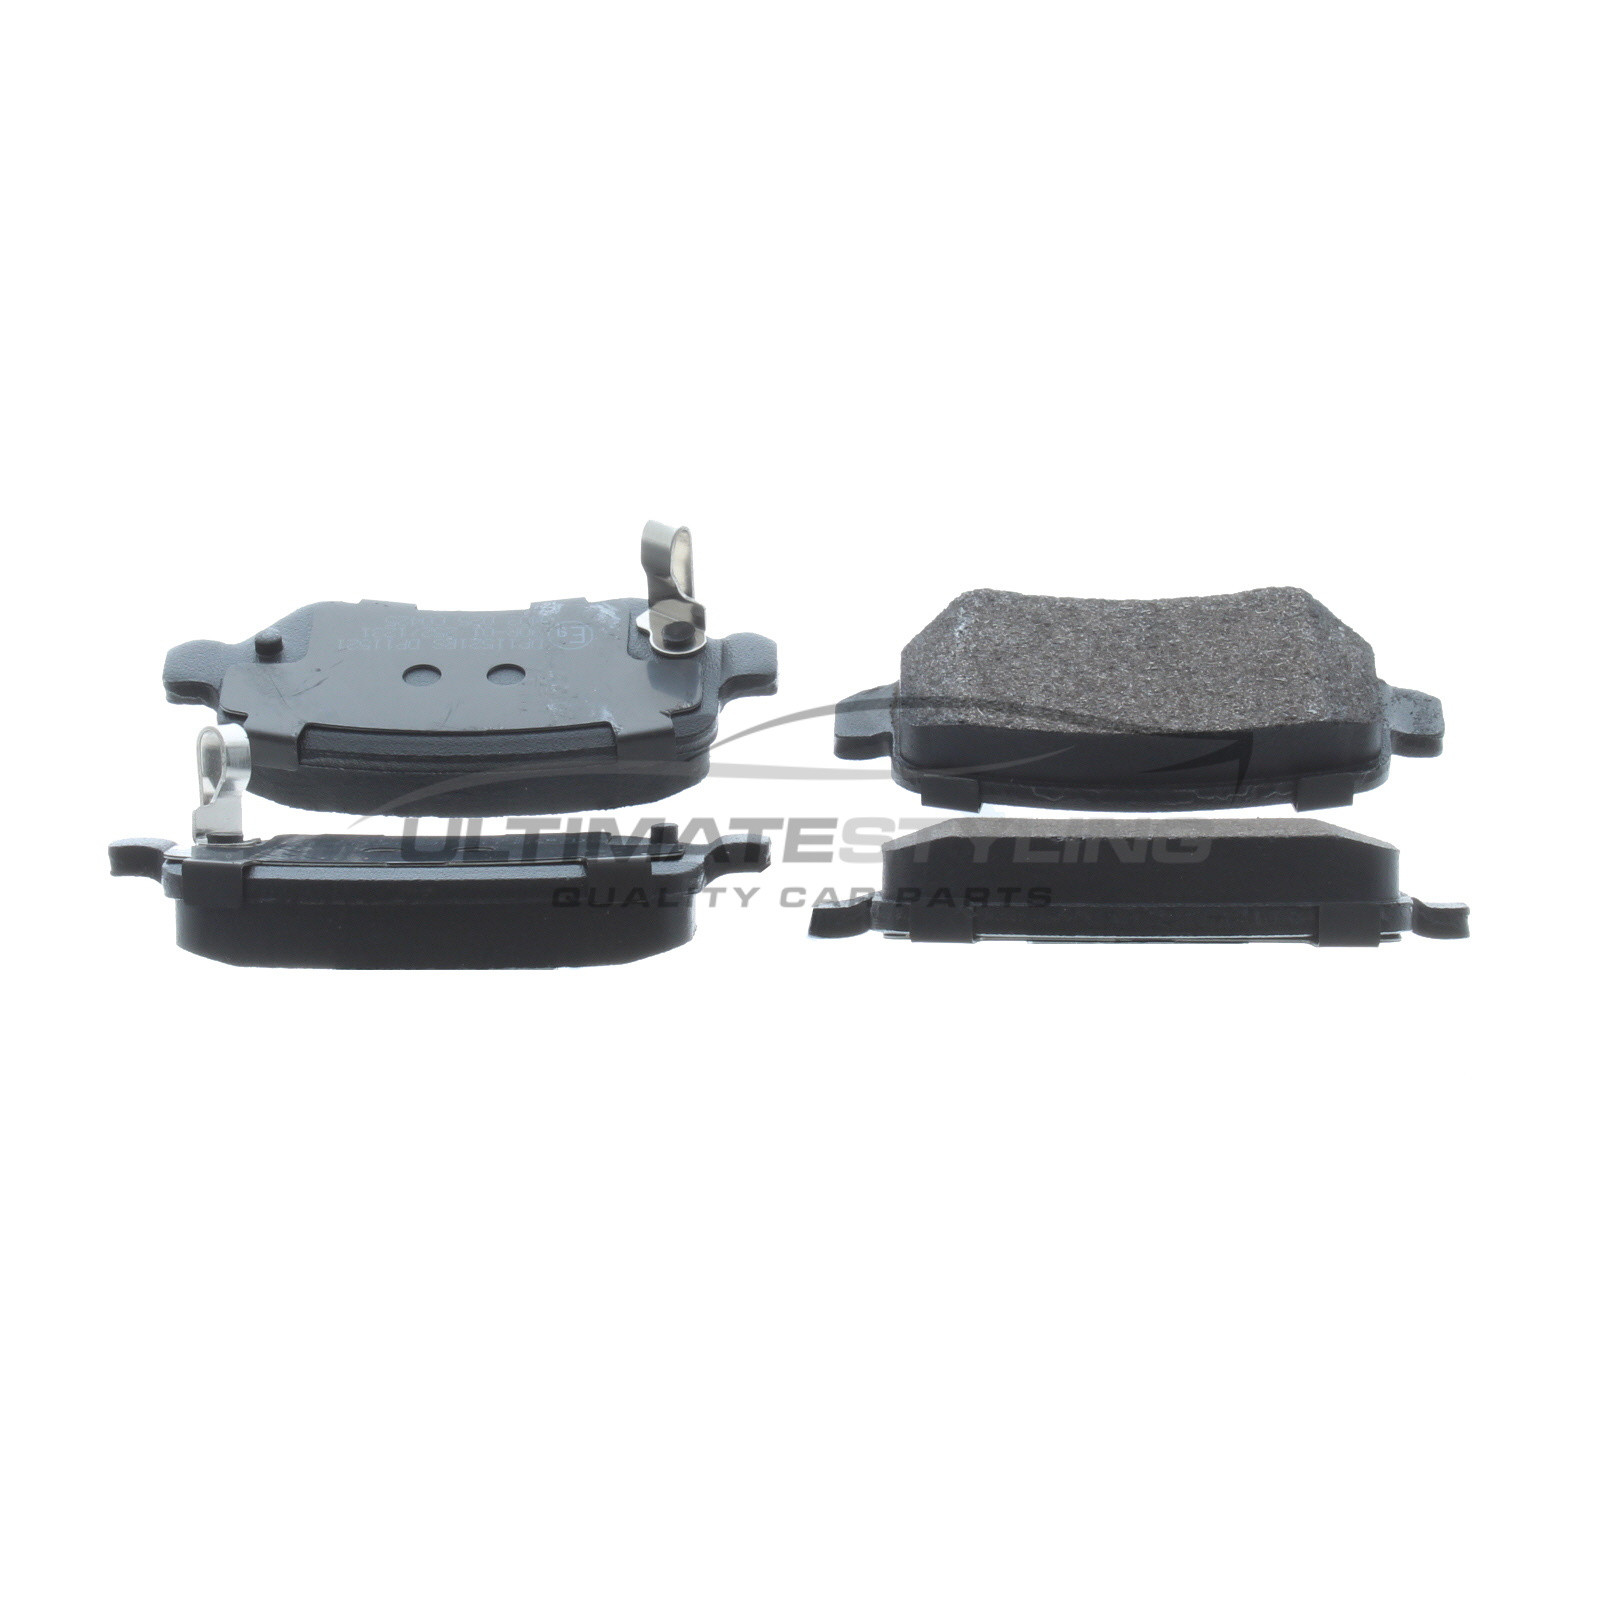 OEM SPEC FRONT AND REAR DISCS PADS FOR VAUXHALL MERIVA 1.6 2002-05